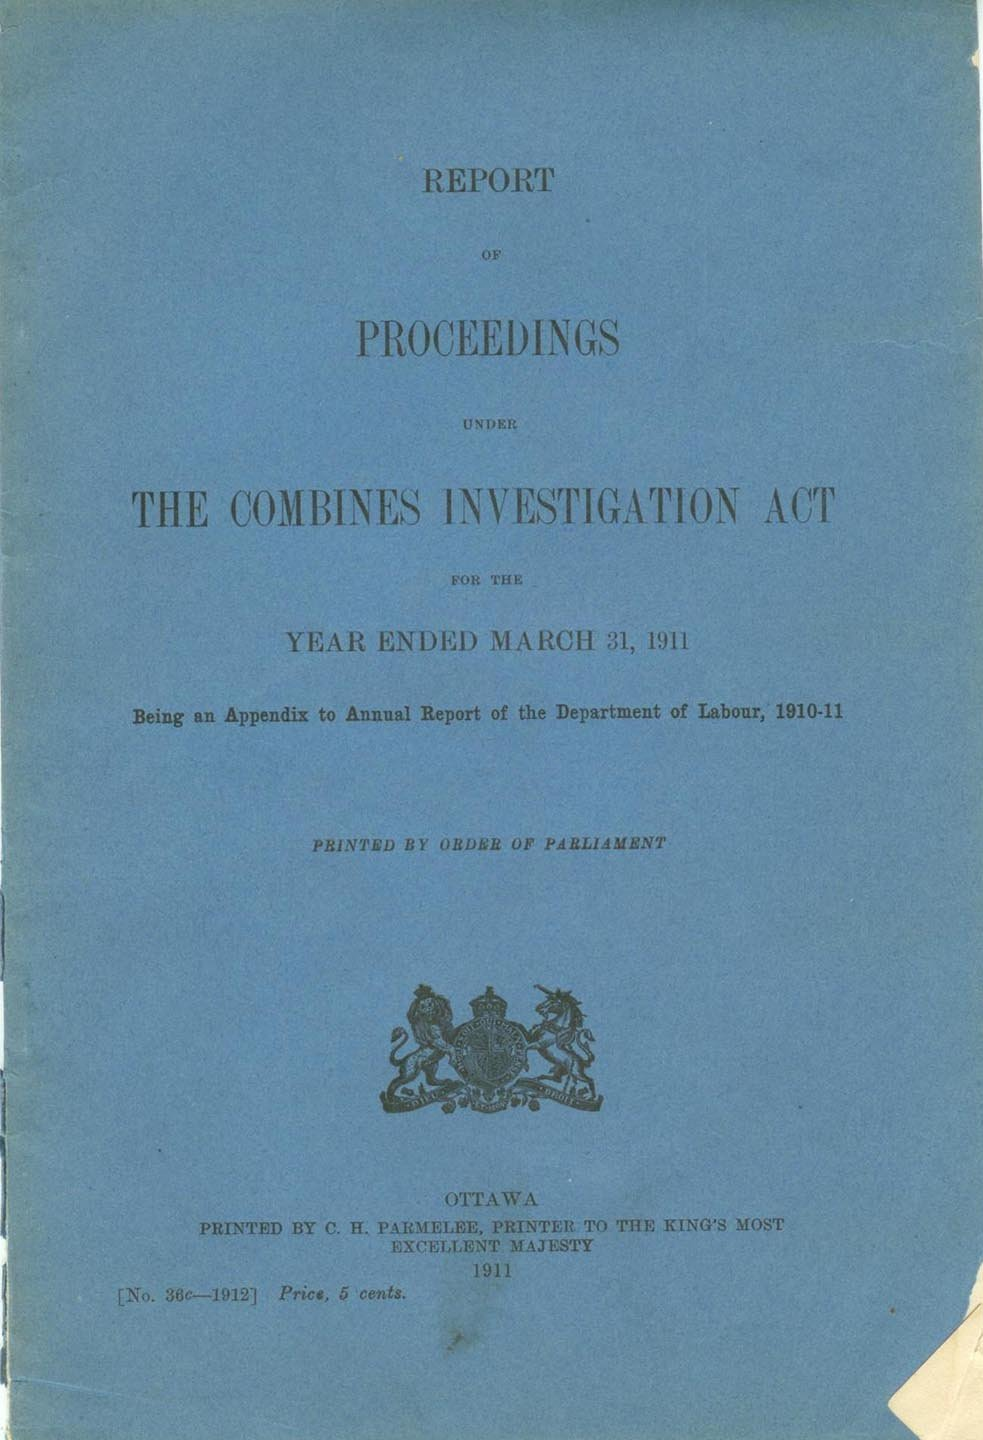 Report of Proceedings Under the Combines Investigation Act For the Year Ended March 31, 1911